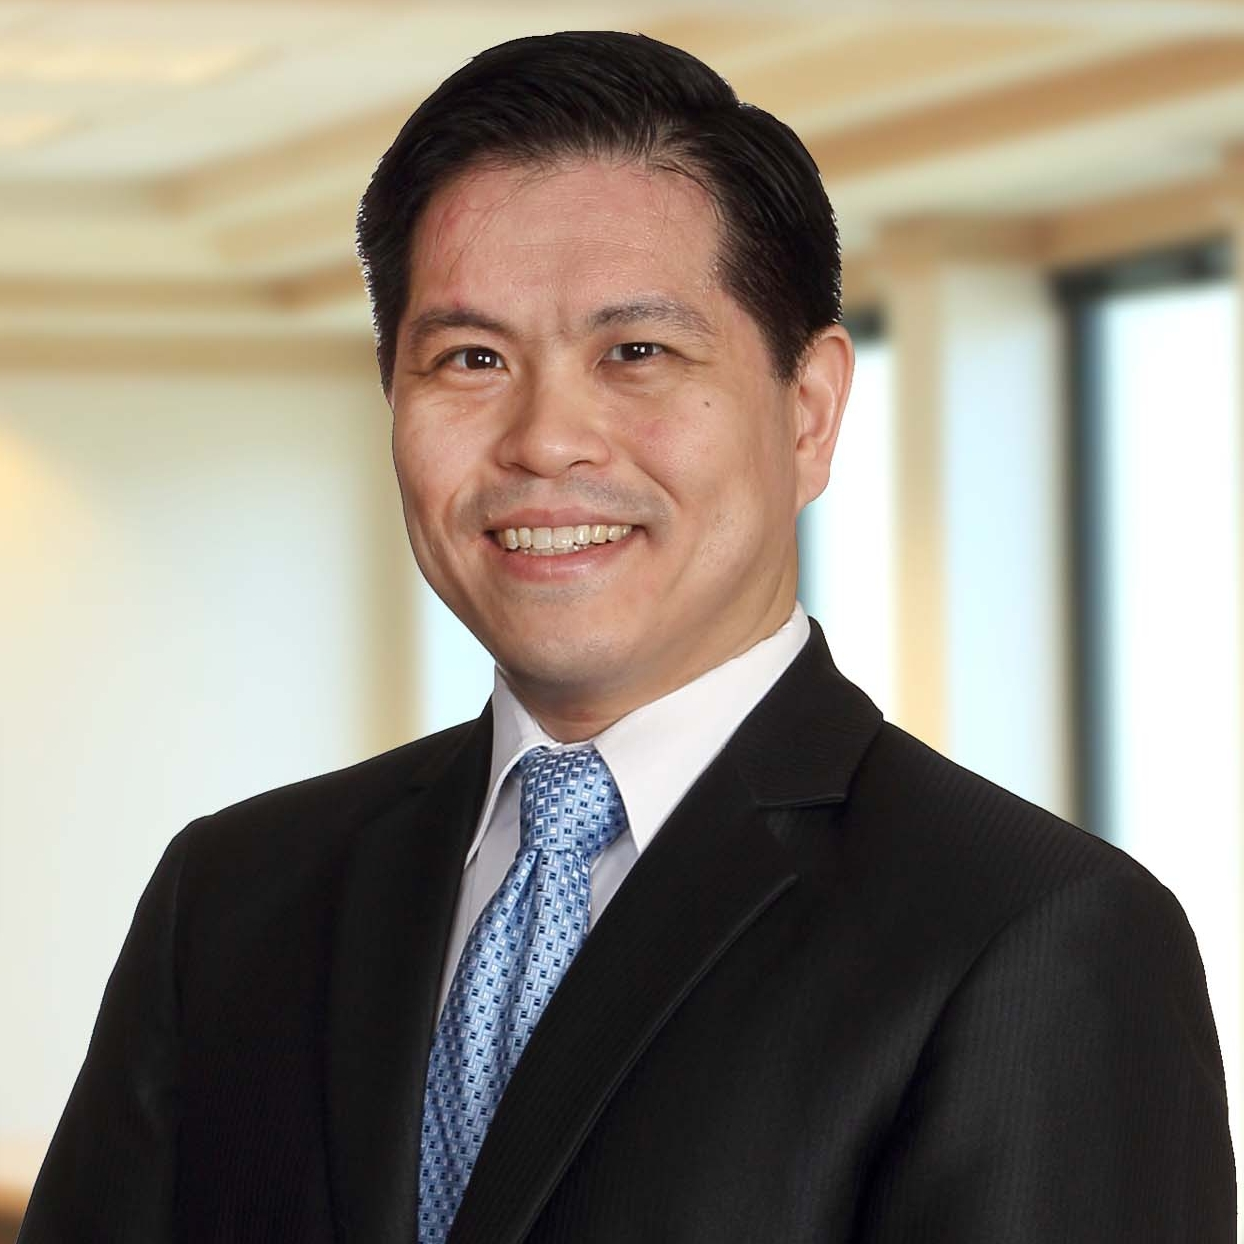 take control of negative online comments legaltxts elijah yip is a partner at cades schutte llp a full service law firm based in honolulu and the chair of the firm s digital media internet law practice